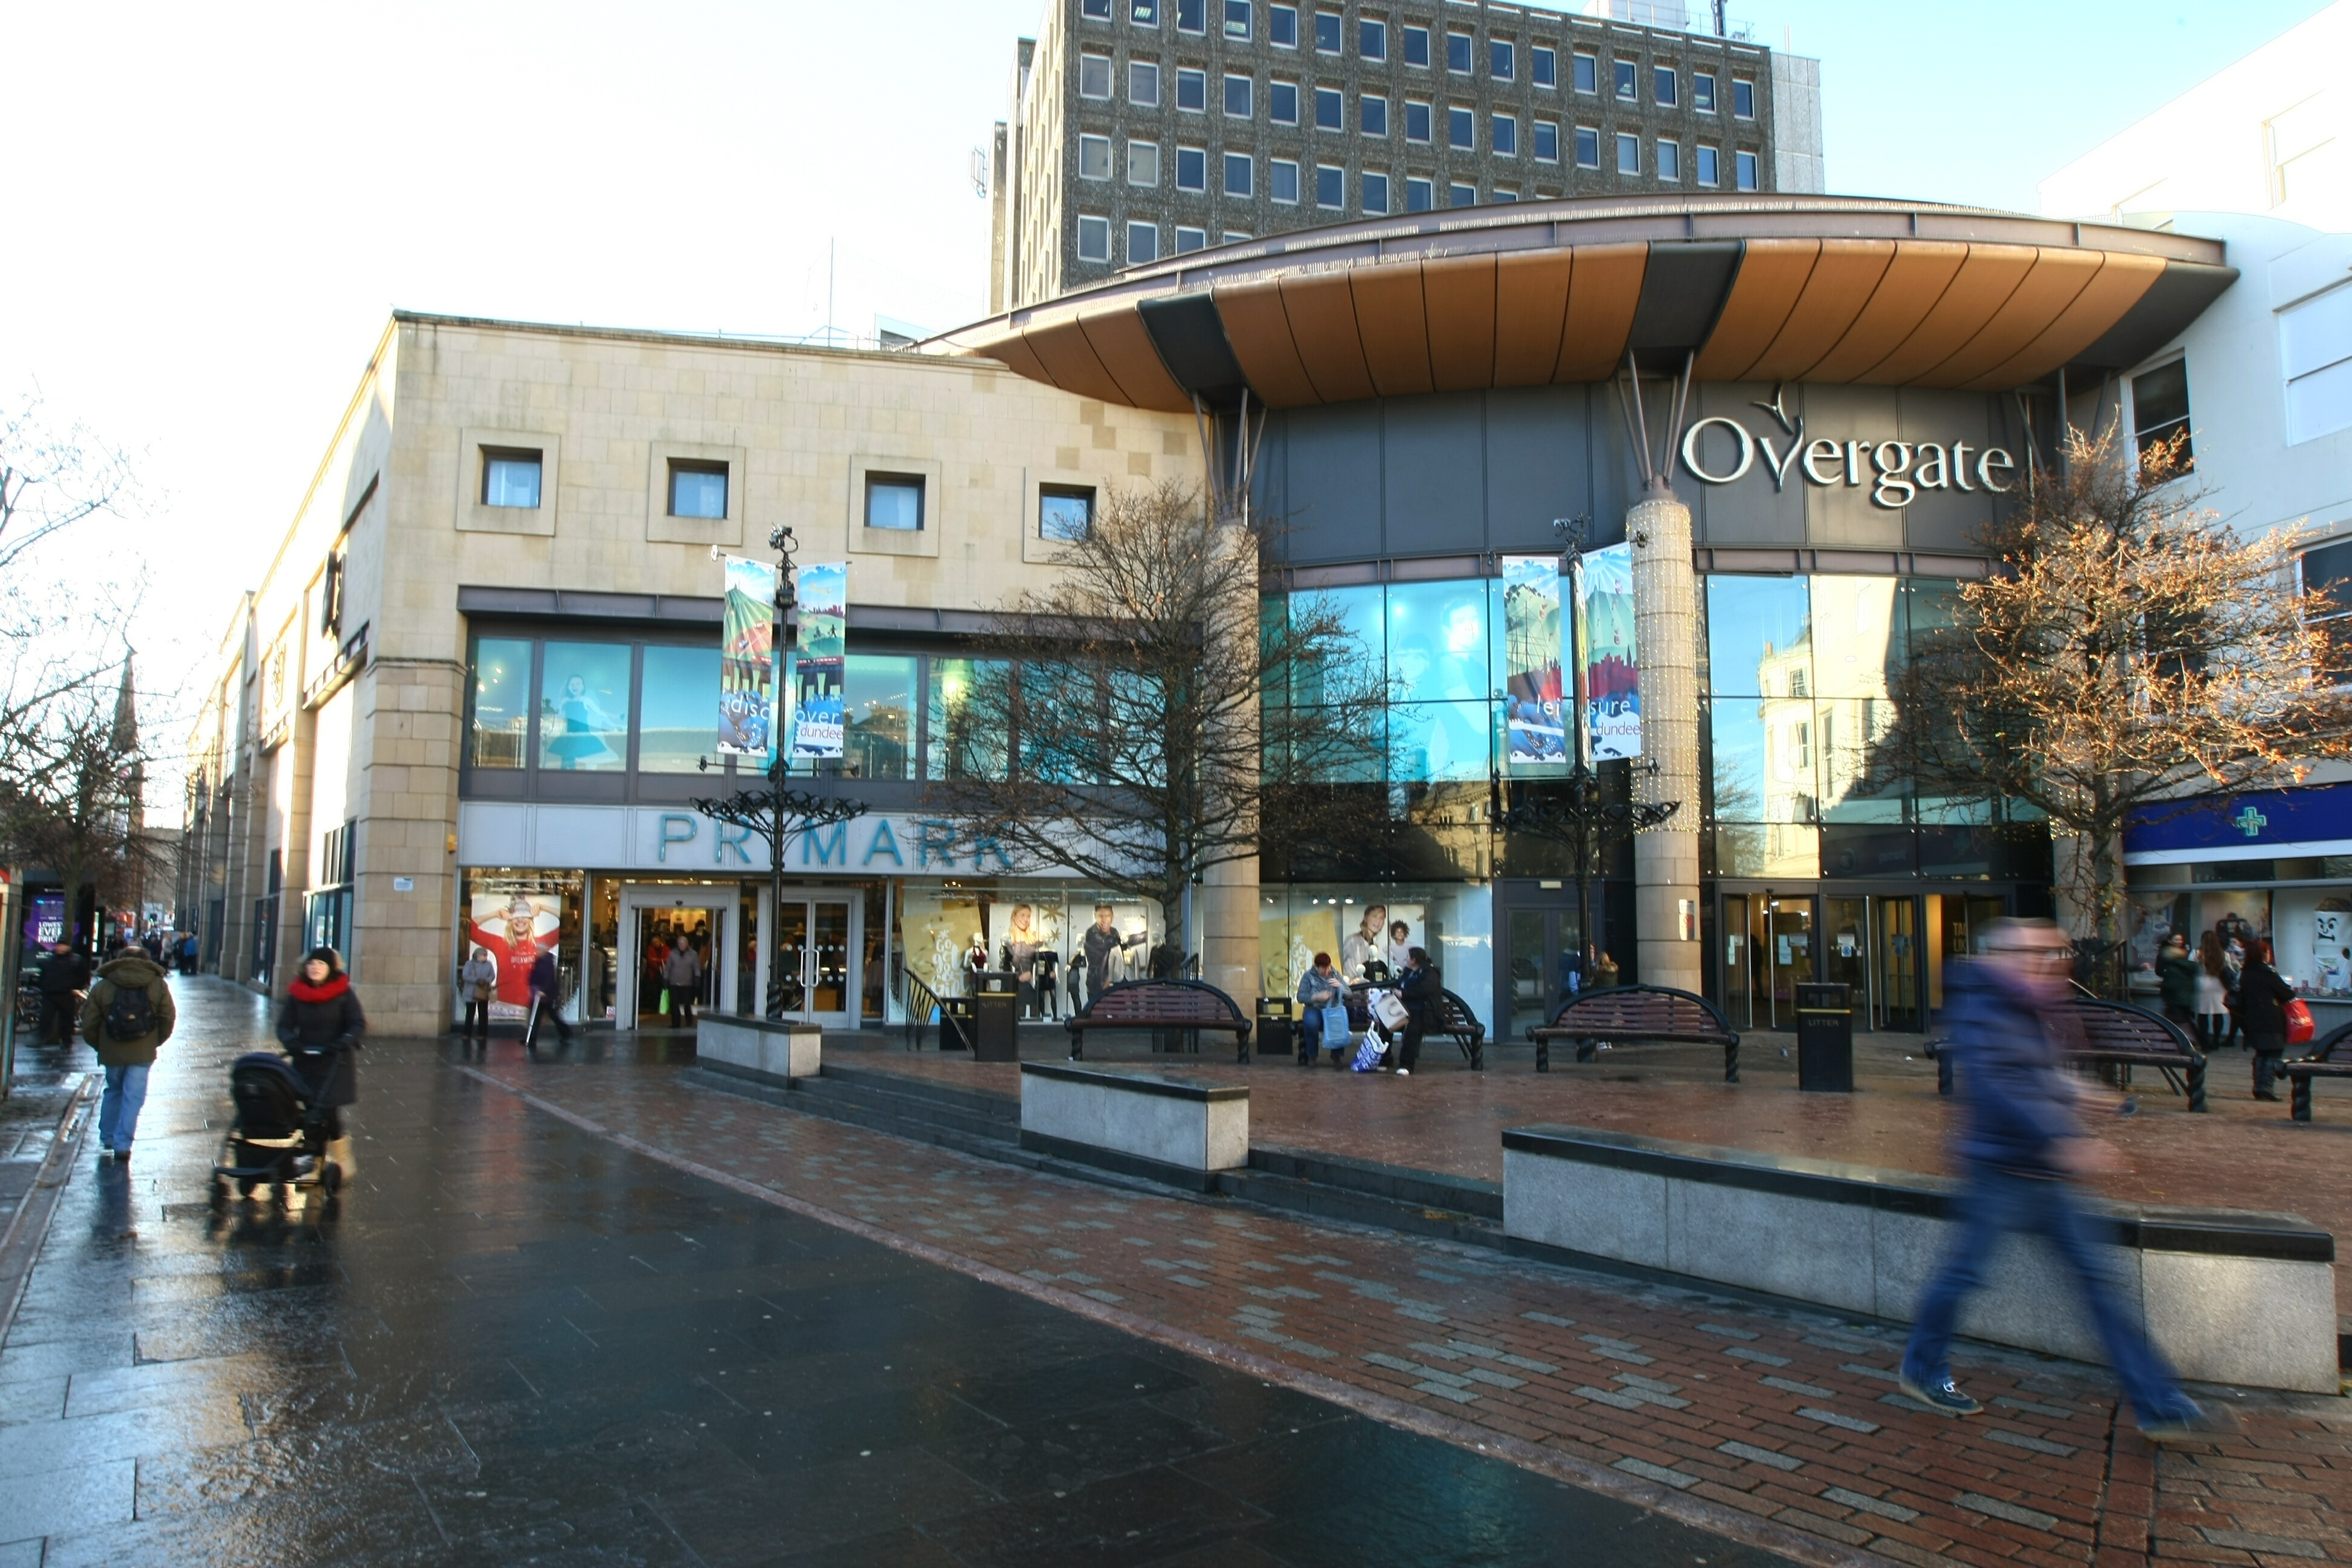 The man exposed himself close to the Overgate shopping centre in central Dundee.